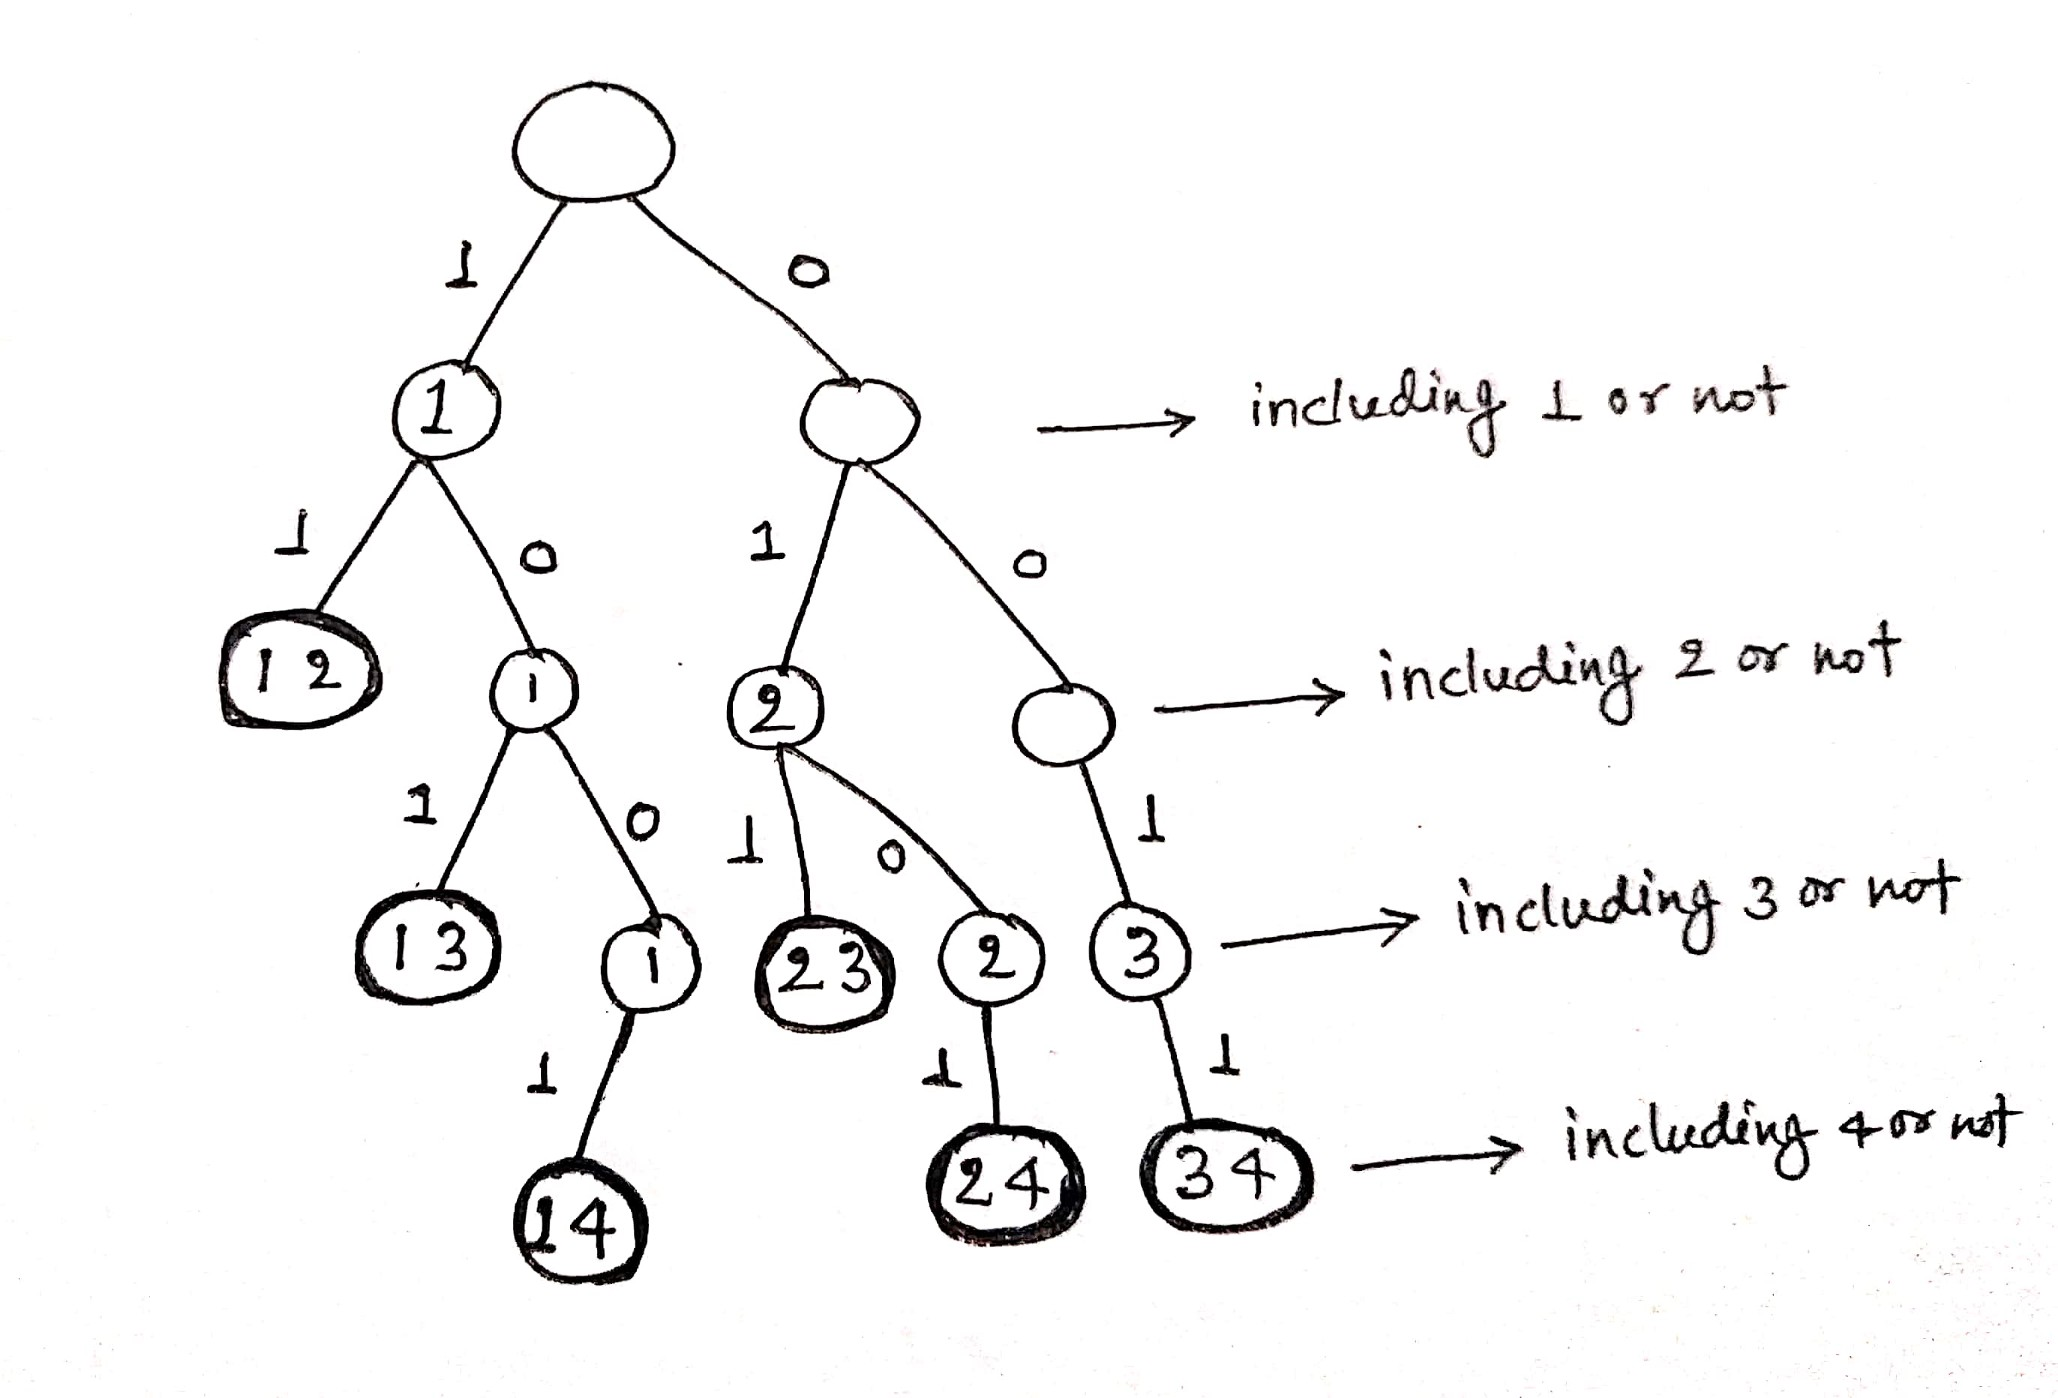 combination tree for finding combinations of K numbers from 1 to n